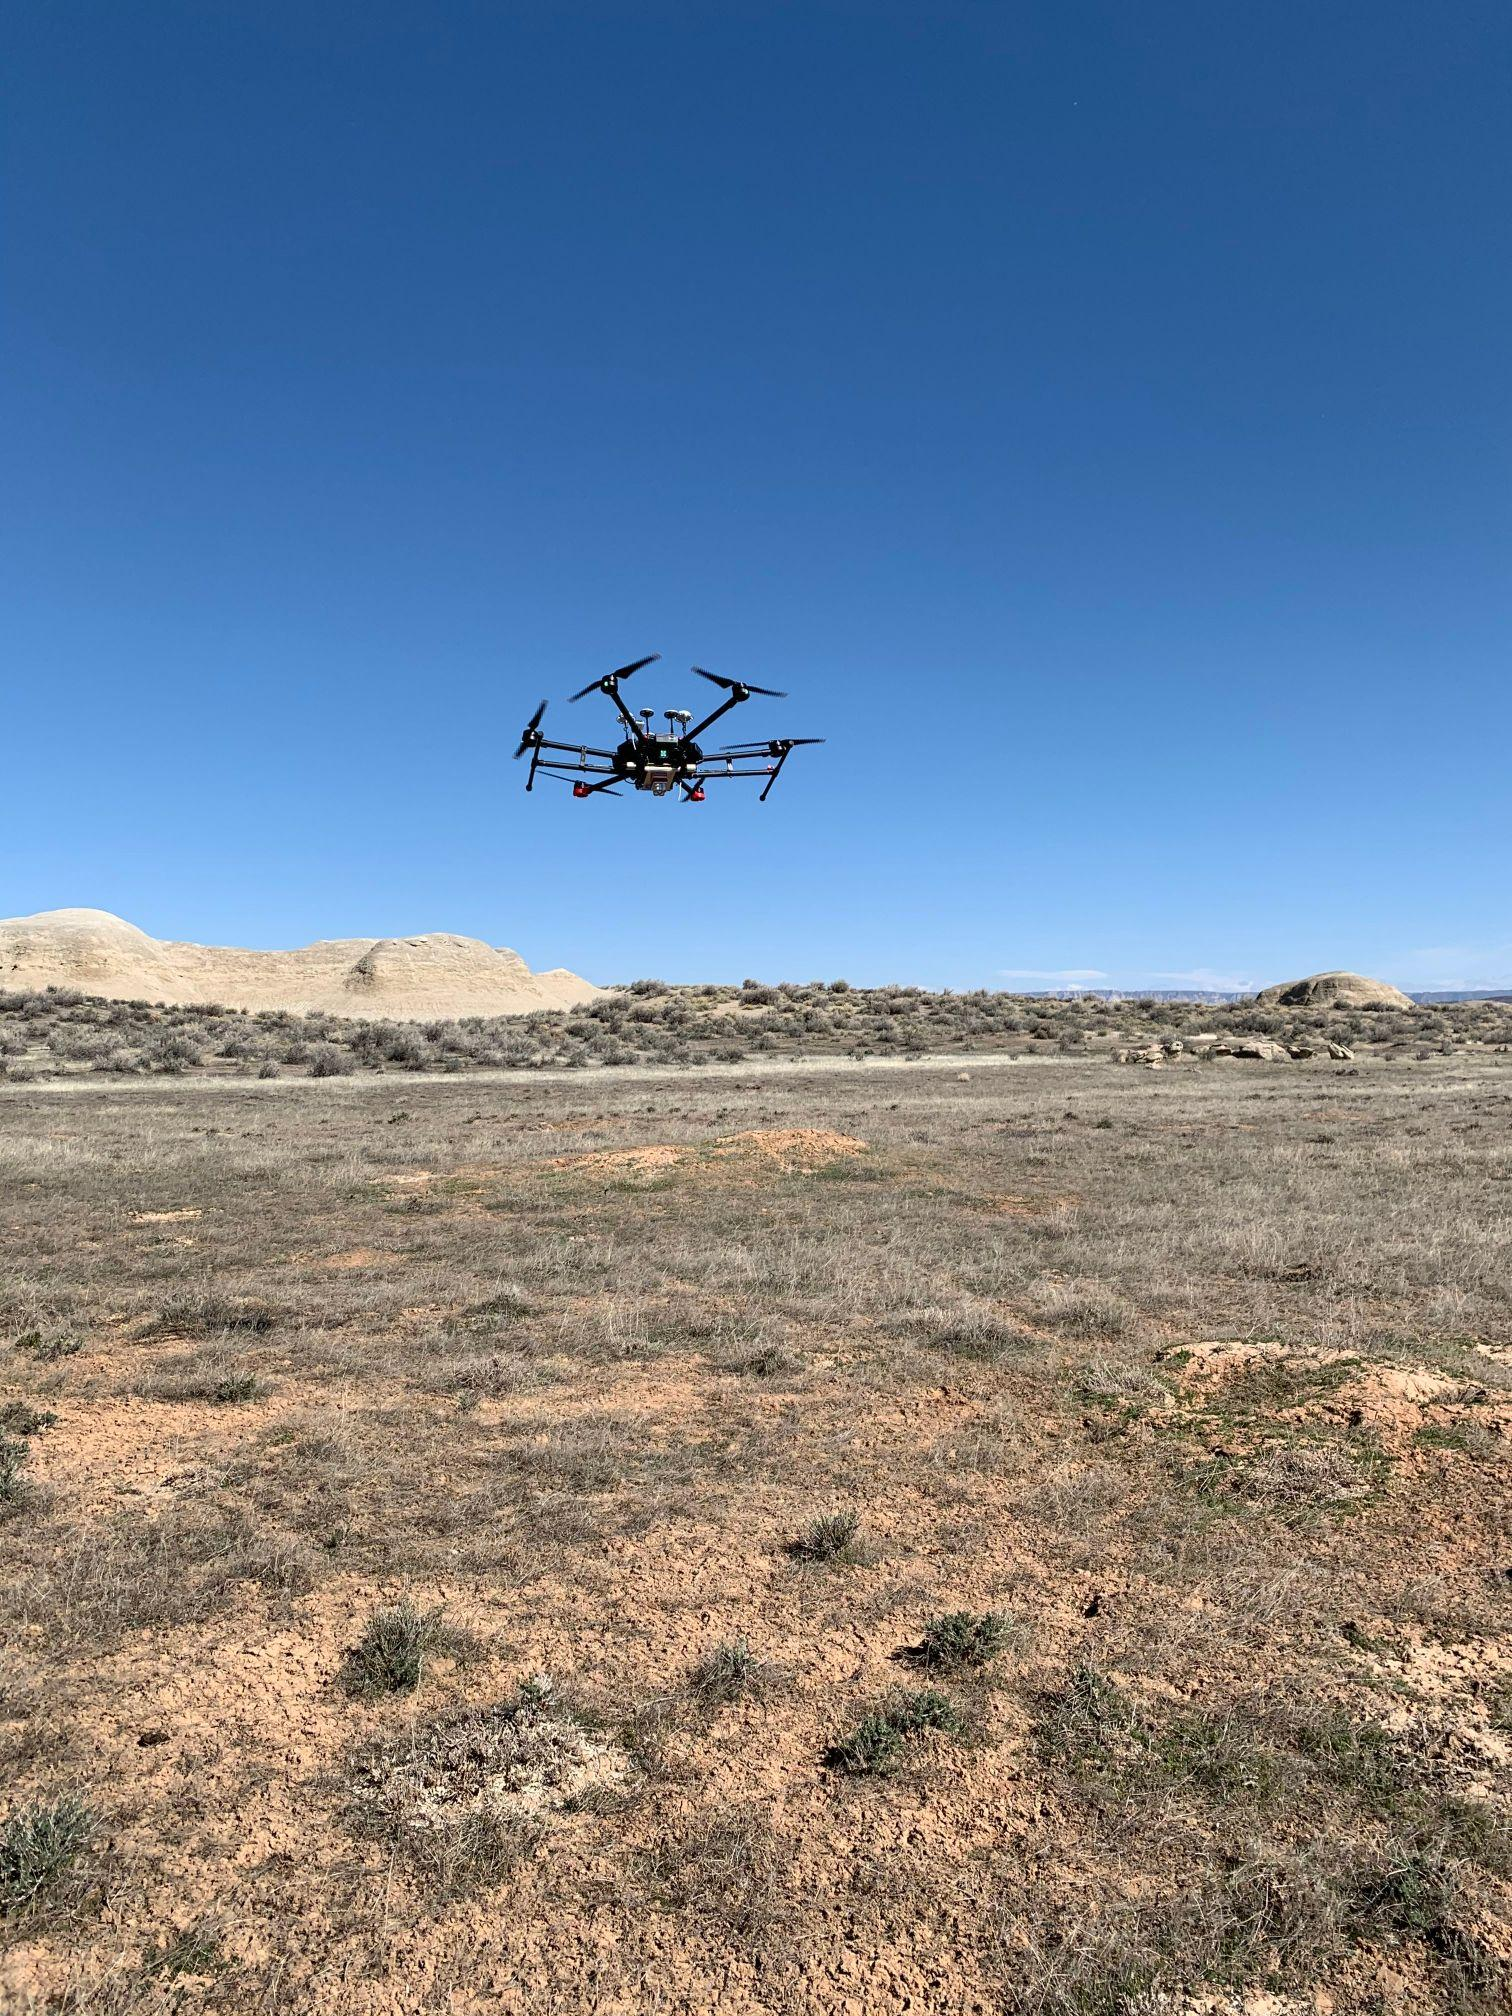 AggieAir's UAV Matrice M 600 Pro in flight above the prairie dog town.